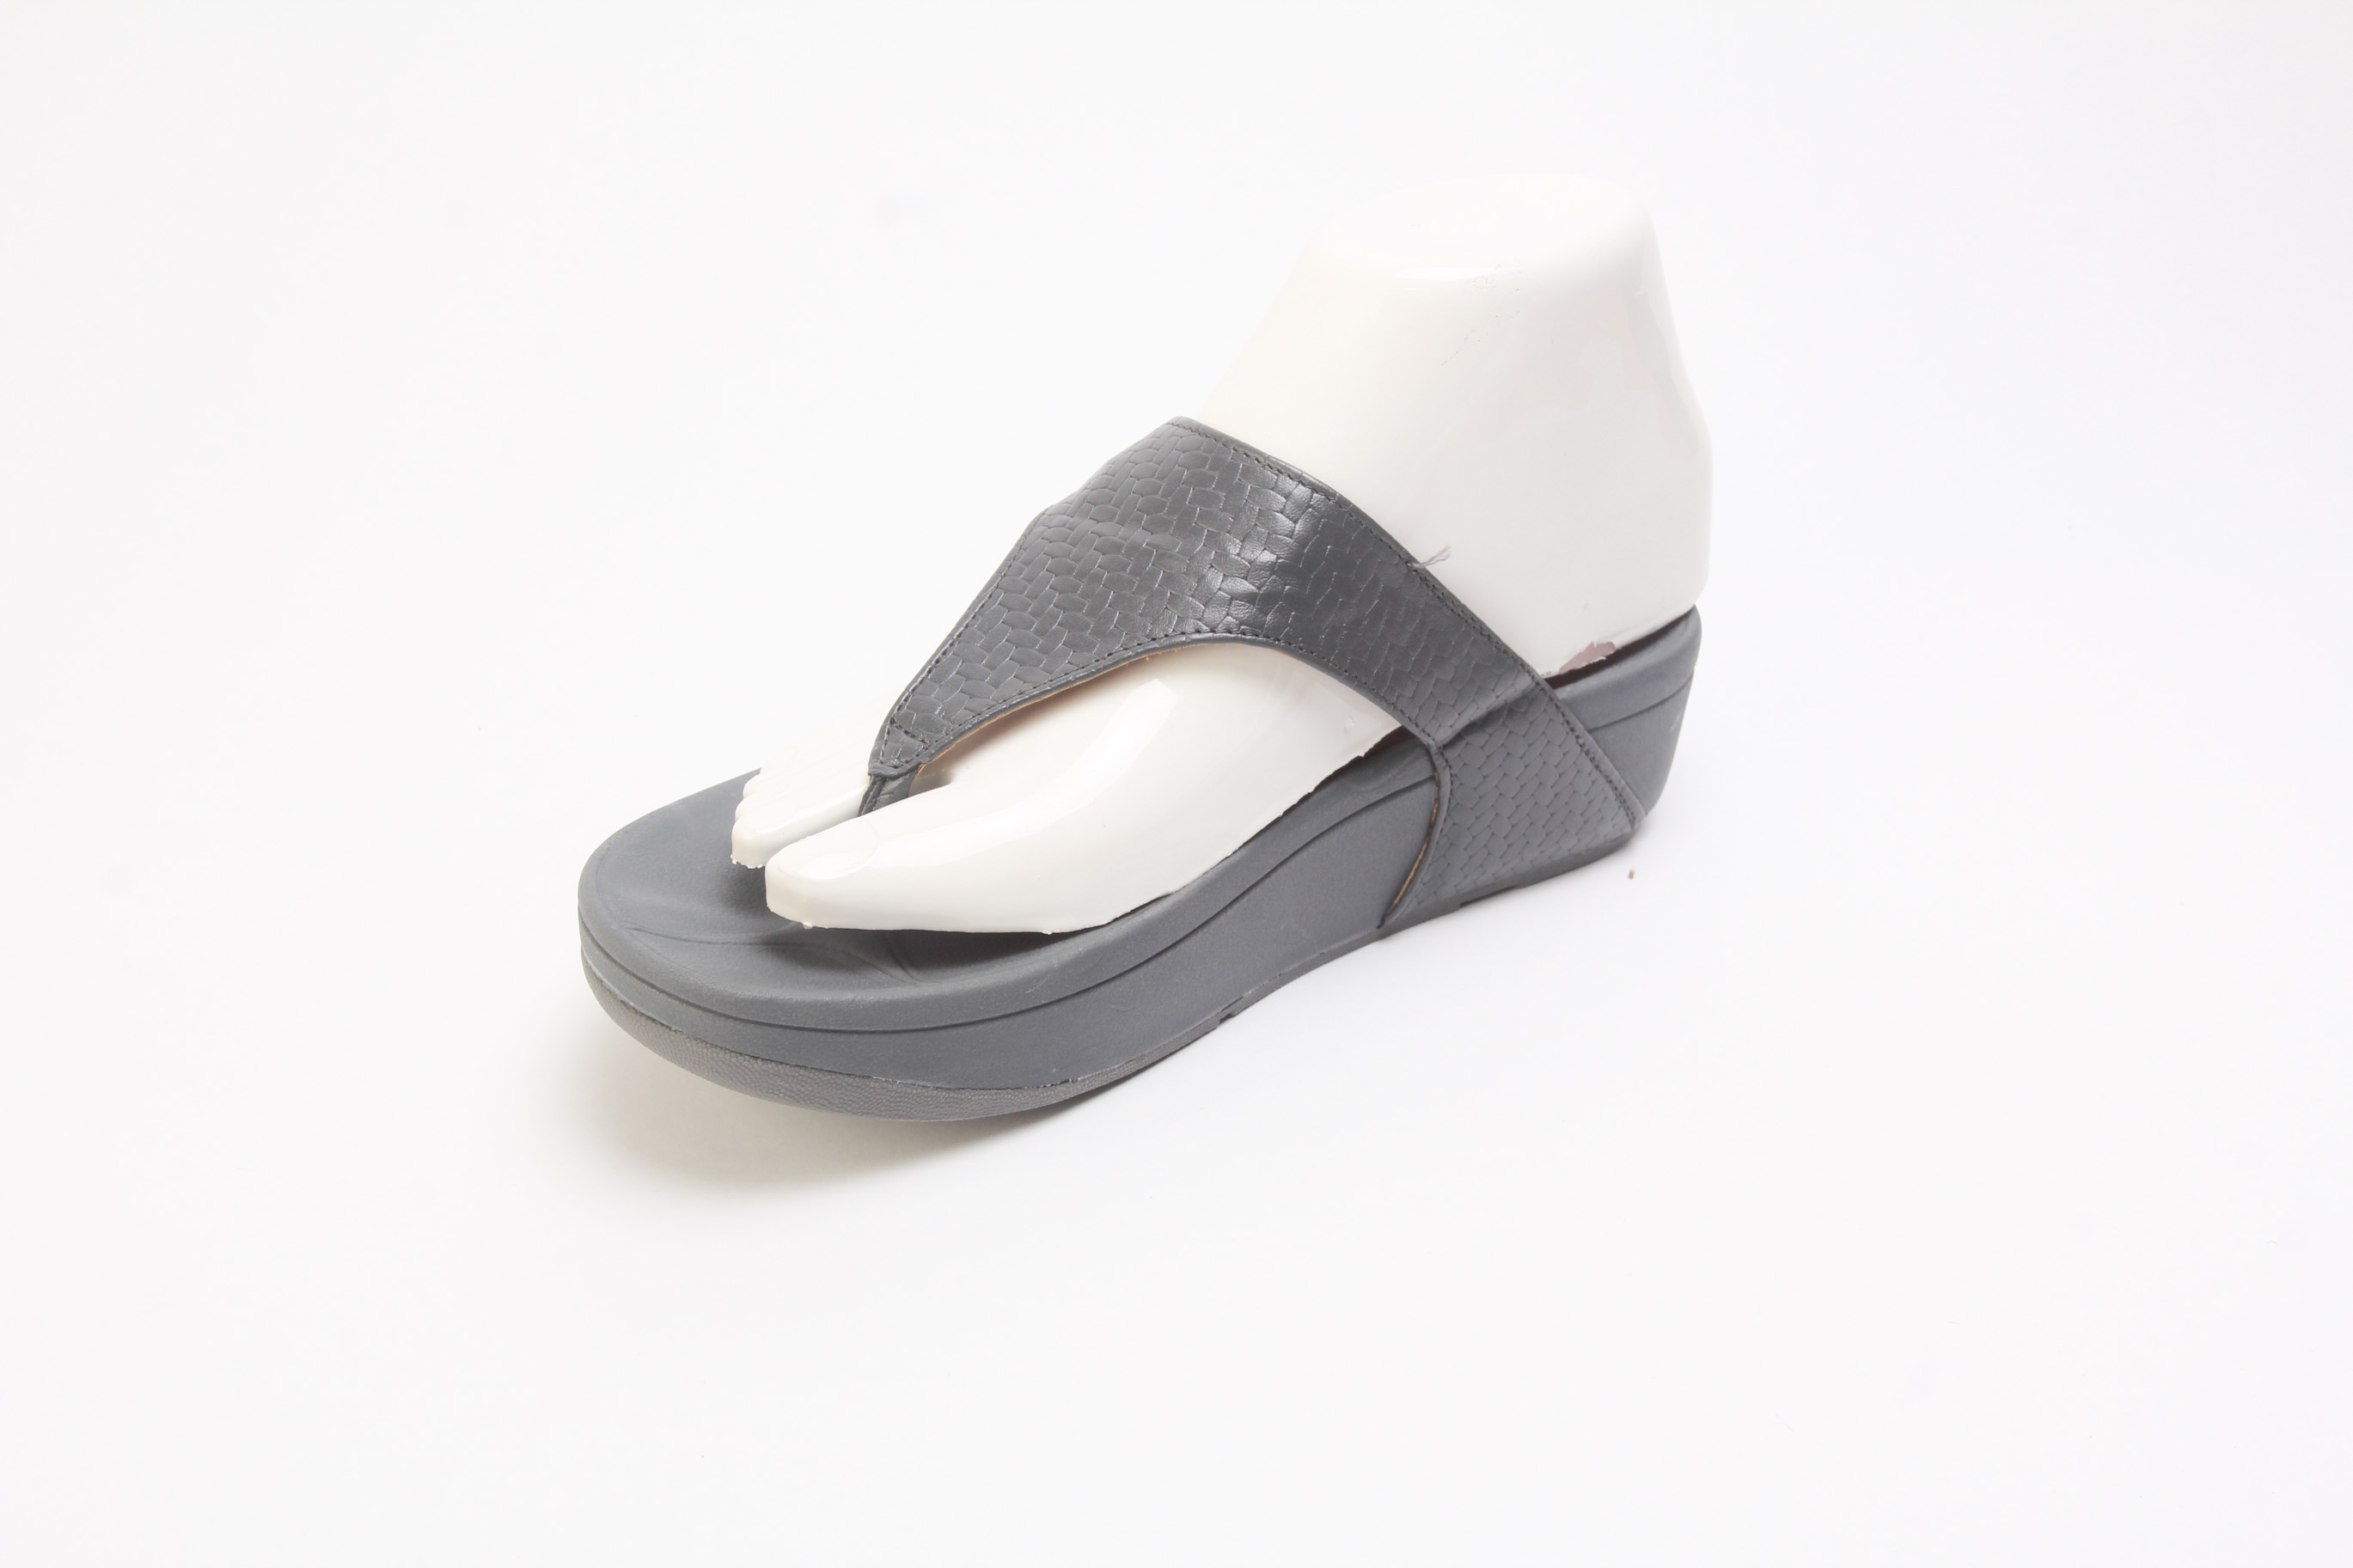 9729e15e0c023 Women s Jelly T-Toe Wedge